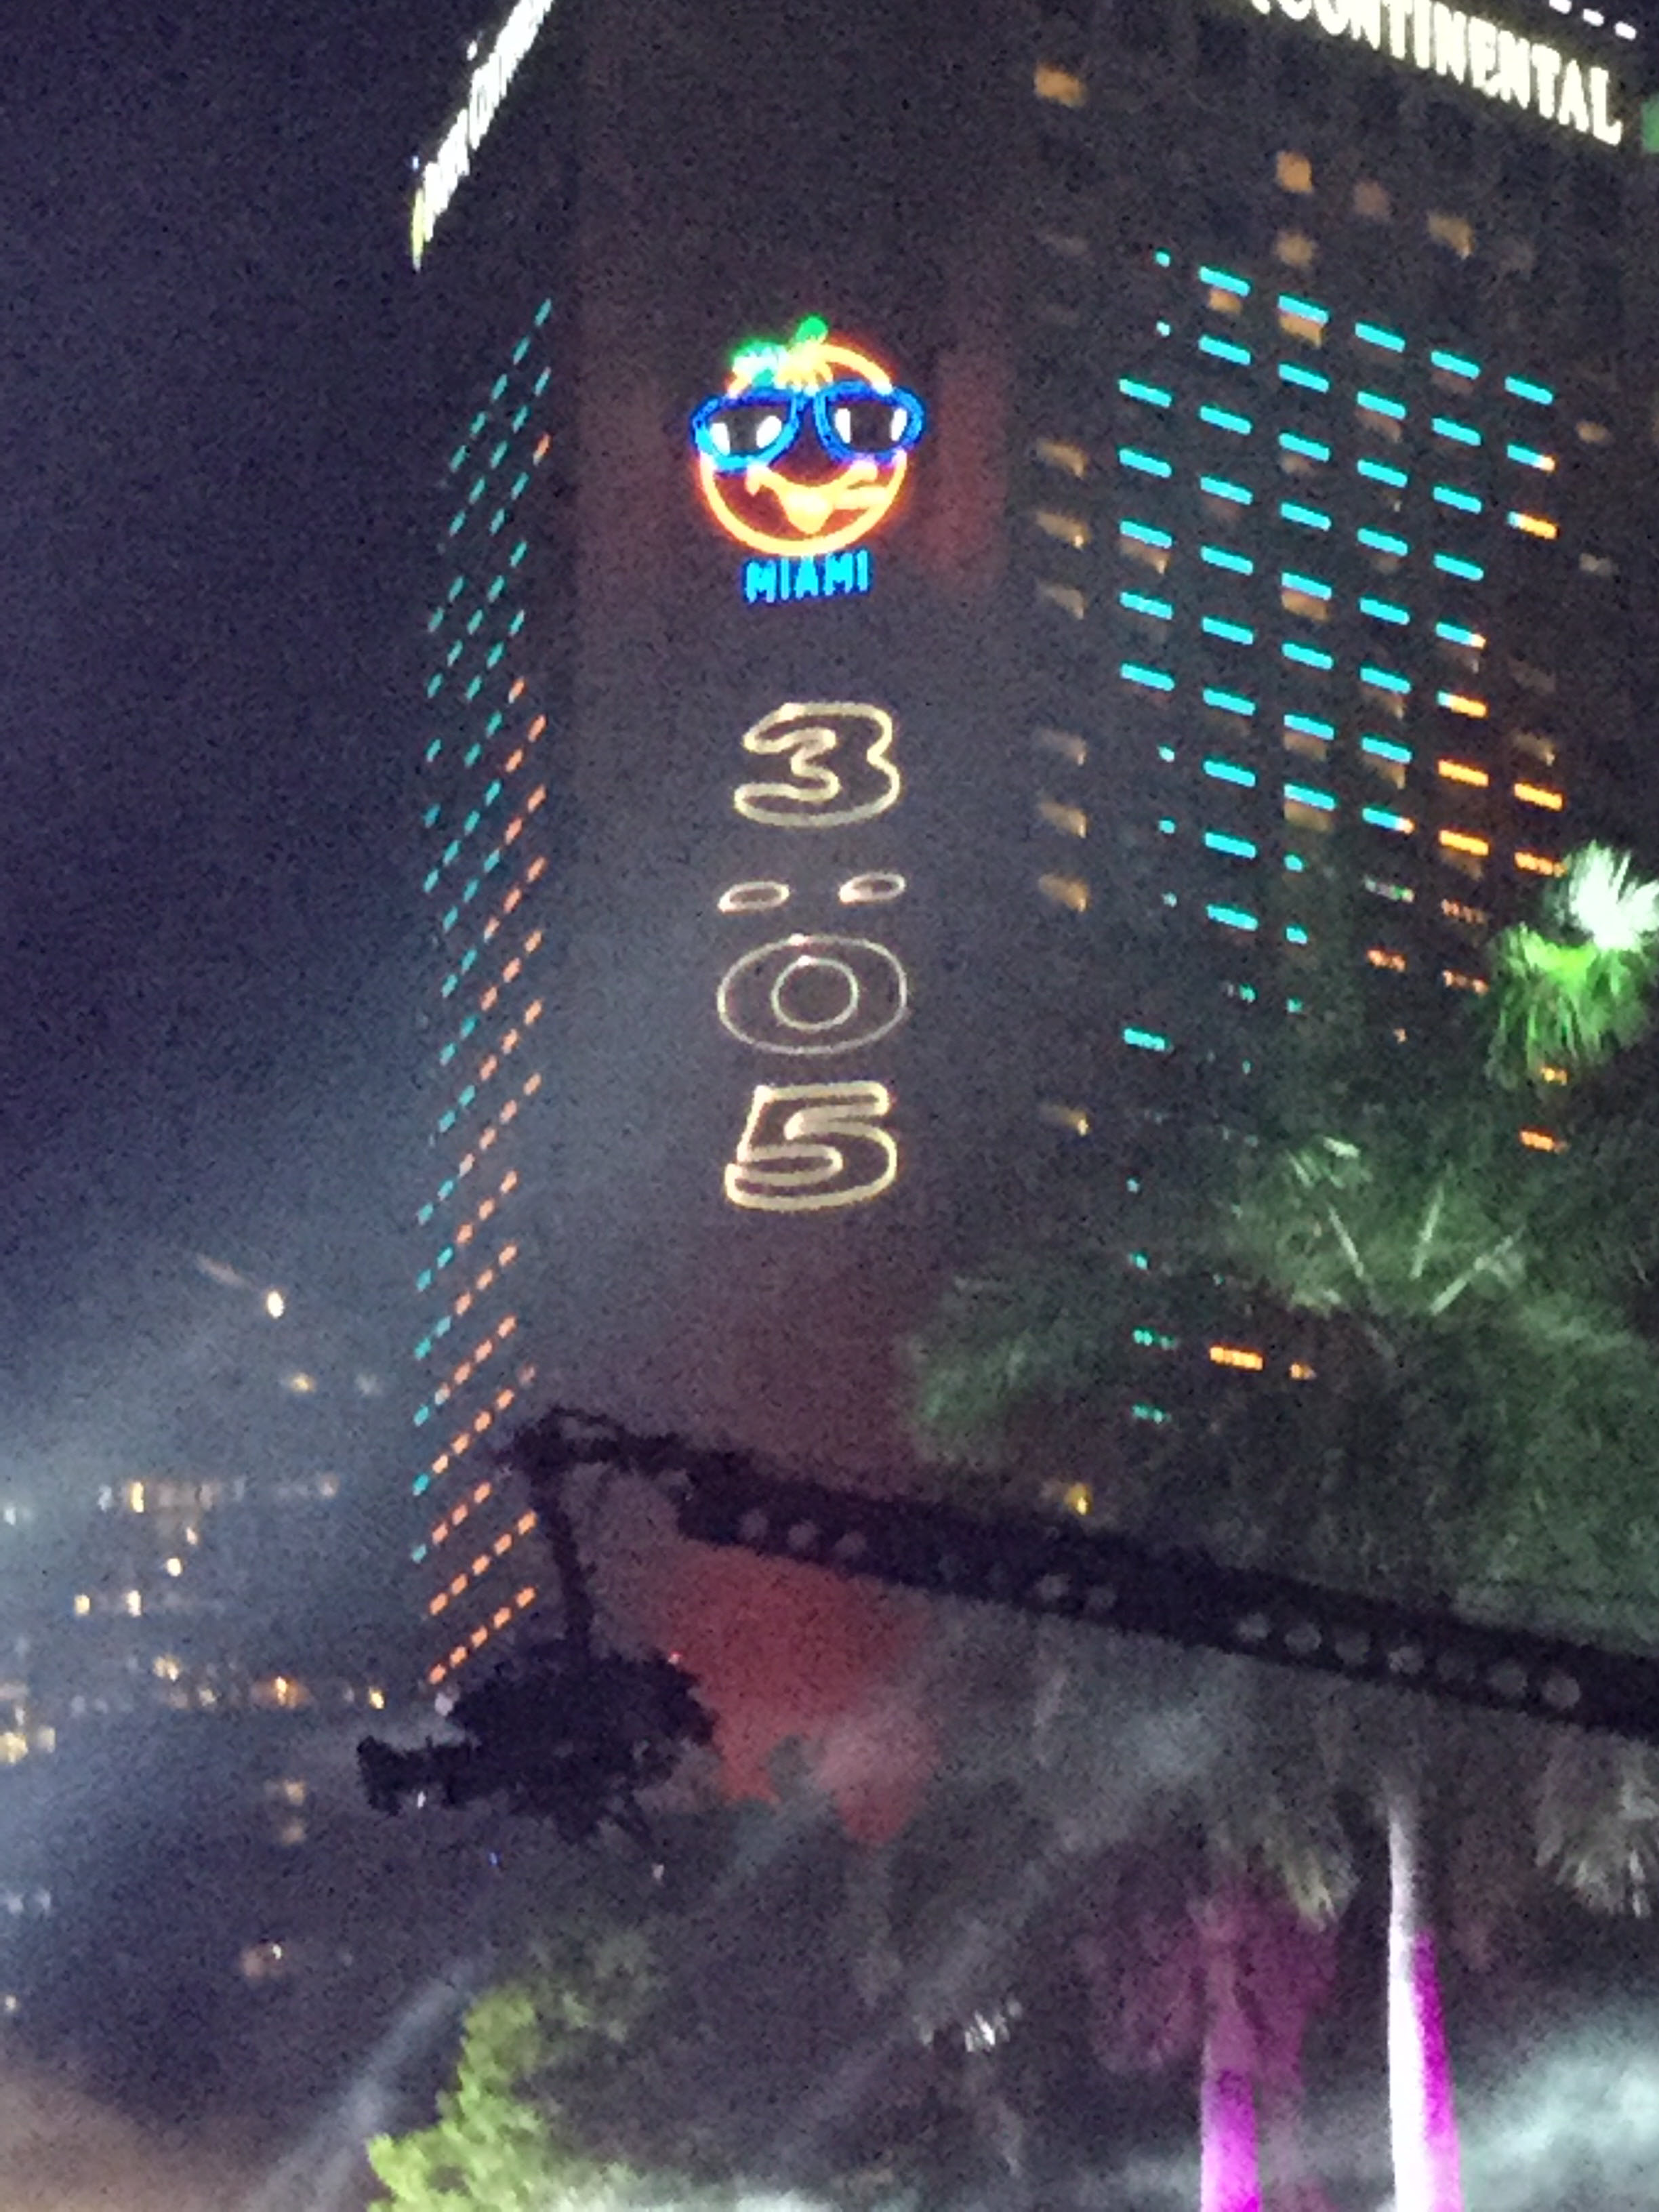 New Year s Wishes From Pitbull and Miami s Big Orange   Miami  FL Patch Clock shows 3 05 before midnight in the Miami 305  The fireworks were  followed by more musical performances until 12 30 a m